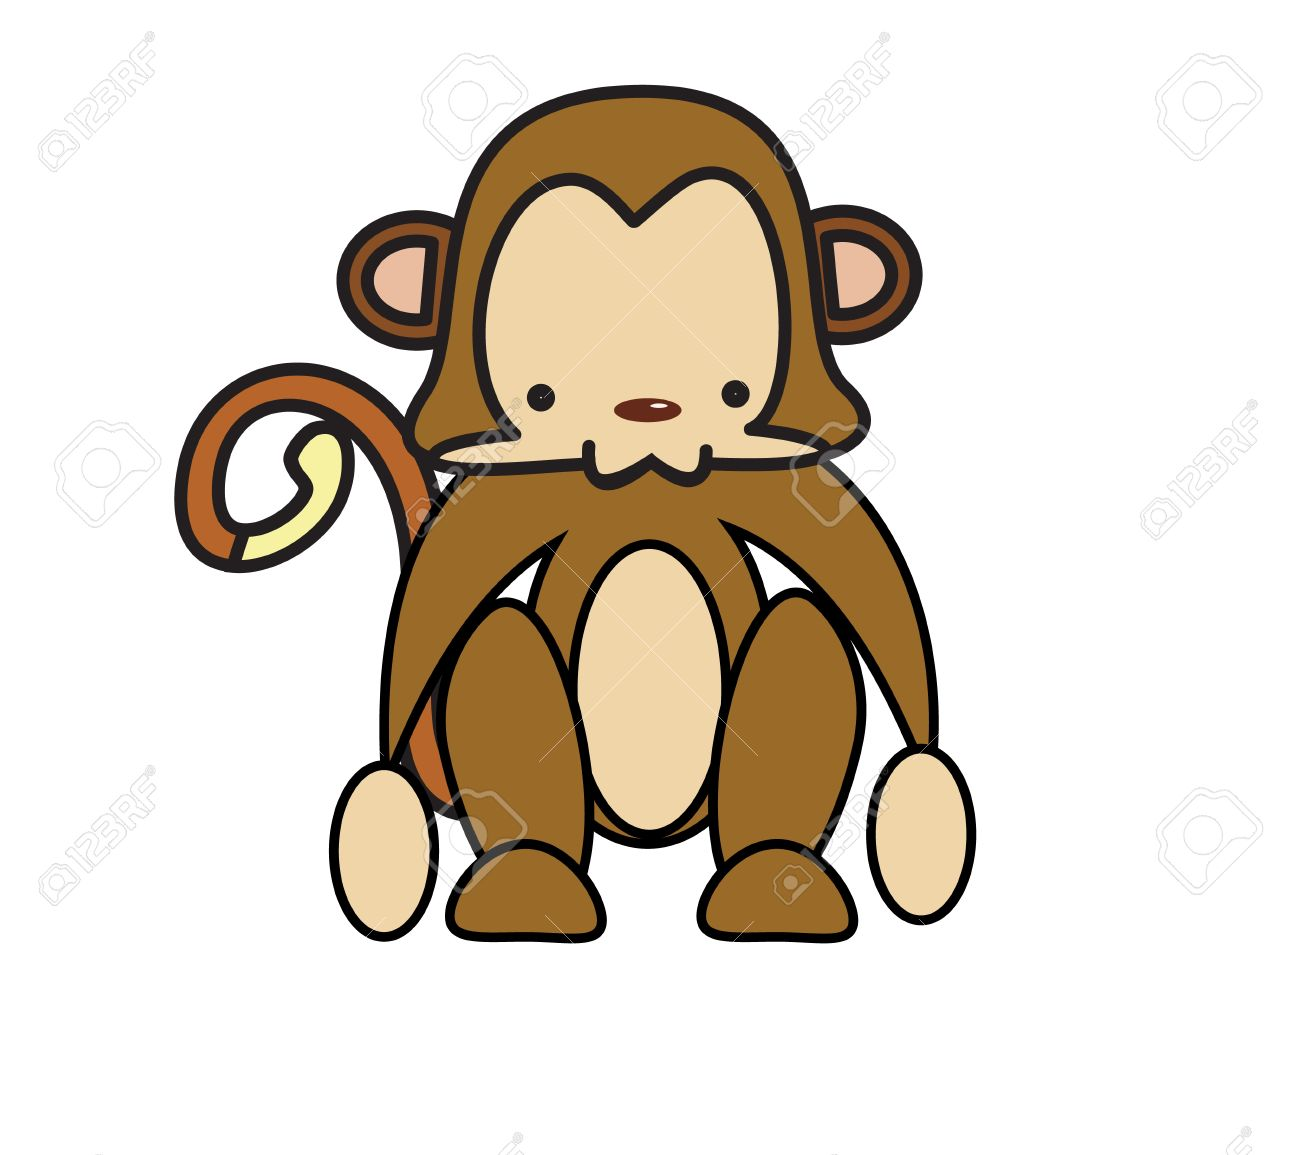 Animated baby monkey